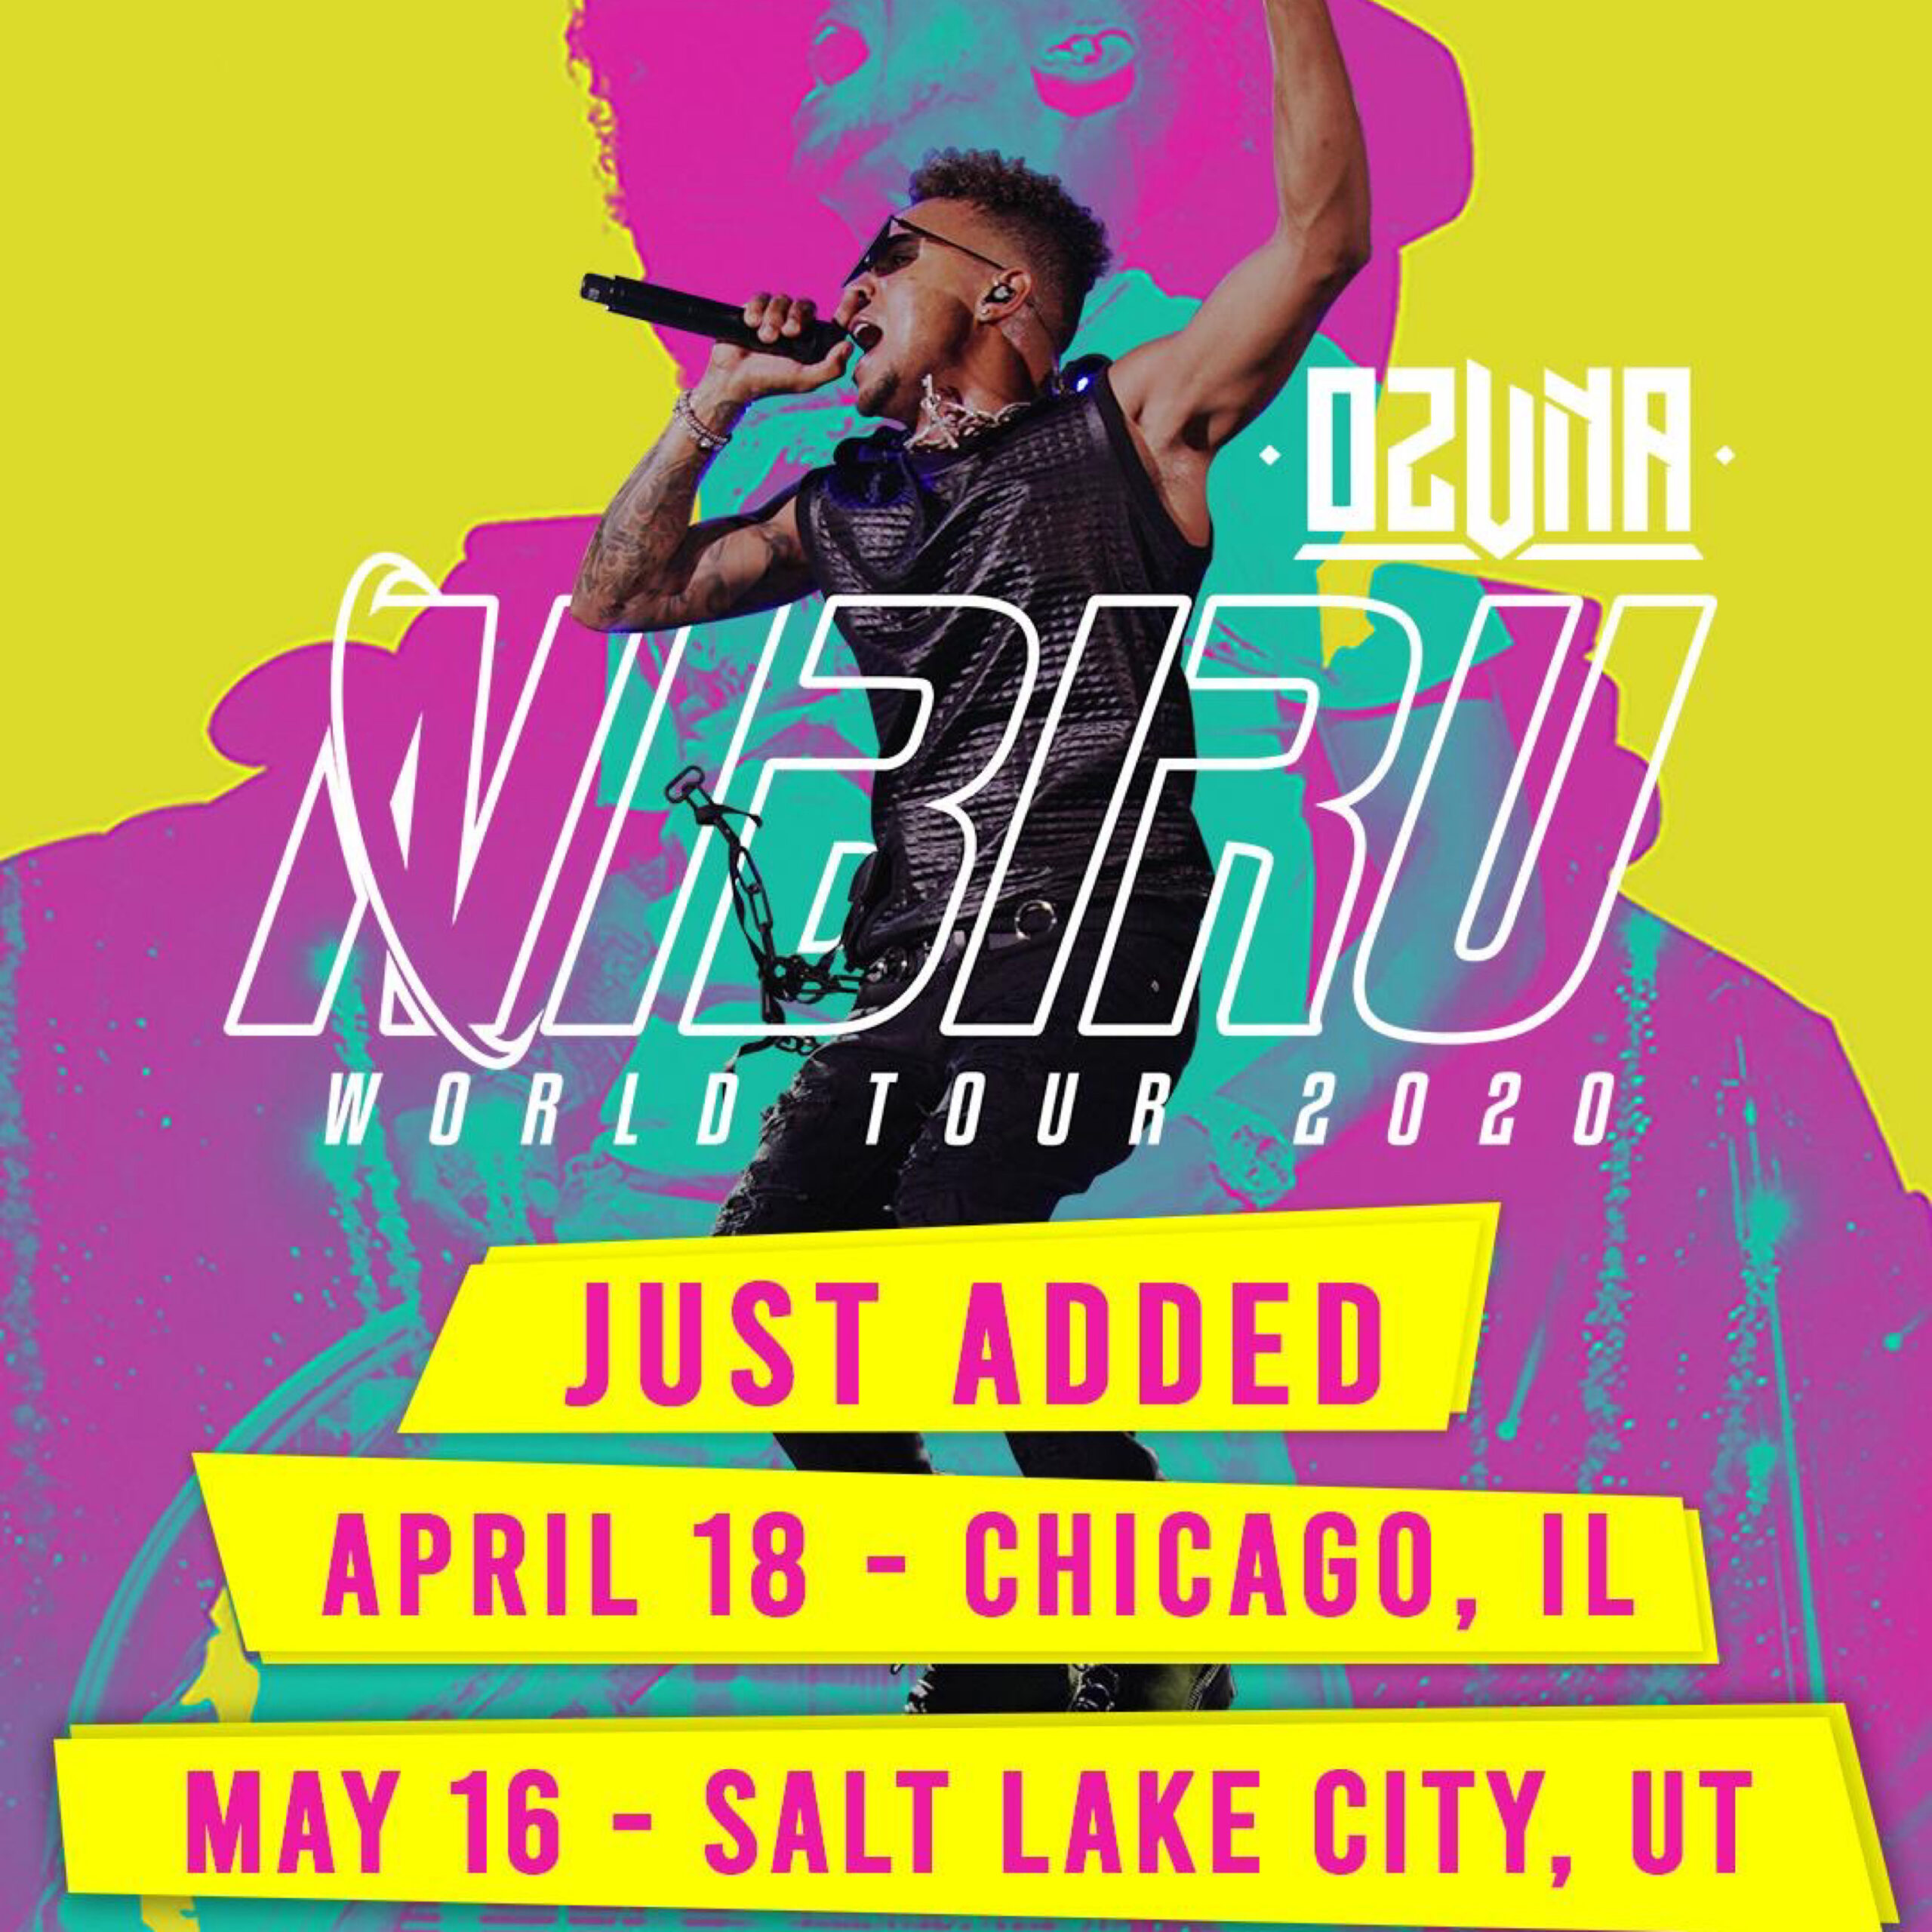 OZUNA ANNOUNCES MORE U.S. DATES OF NIBIRU WORLD TOUR 2020